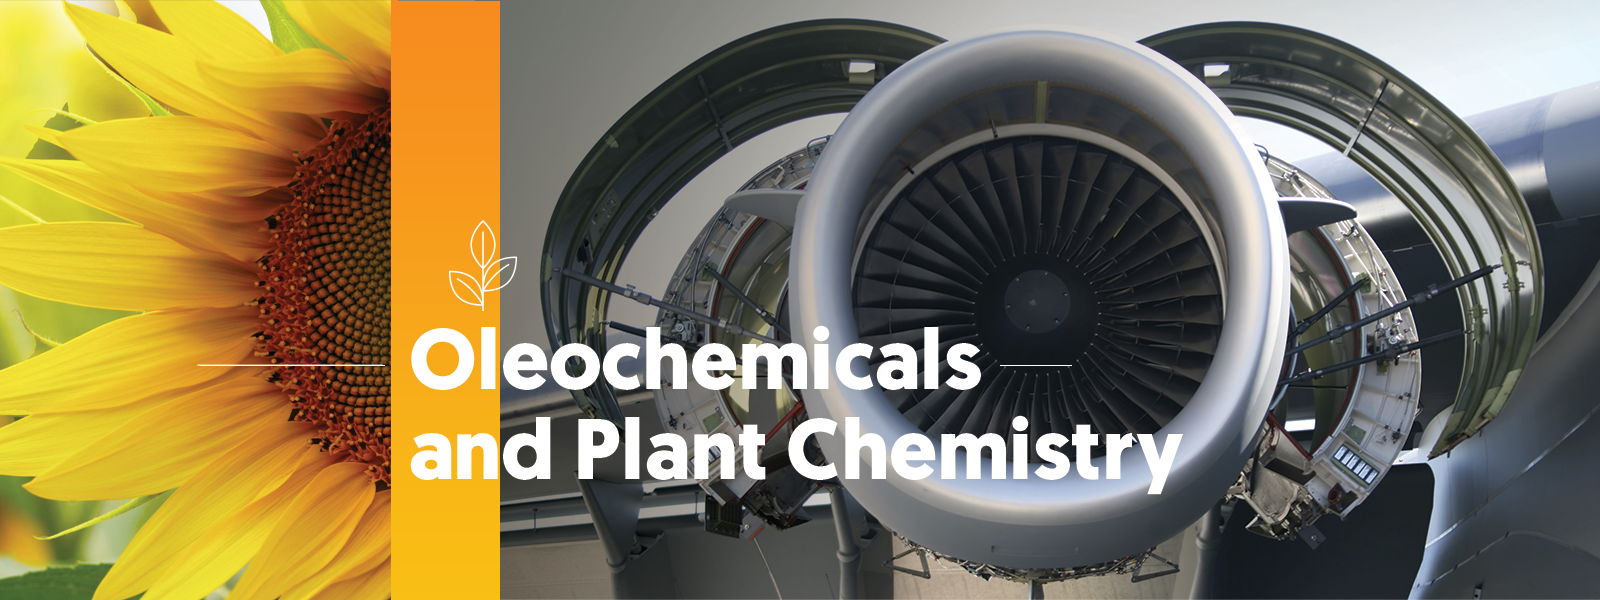 Oleochemicals and plant chemistry